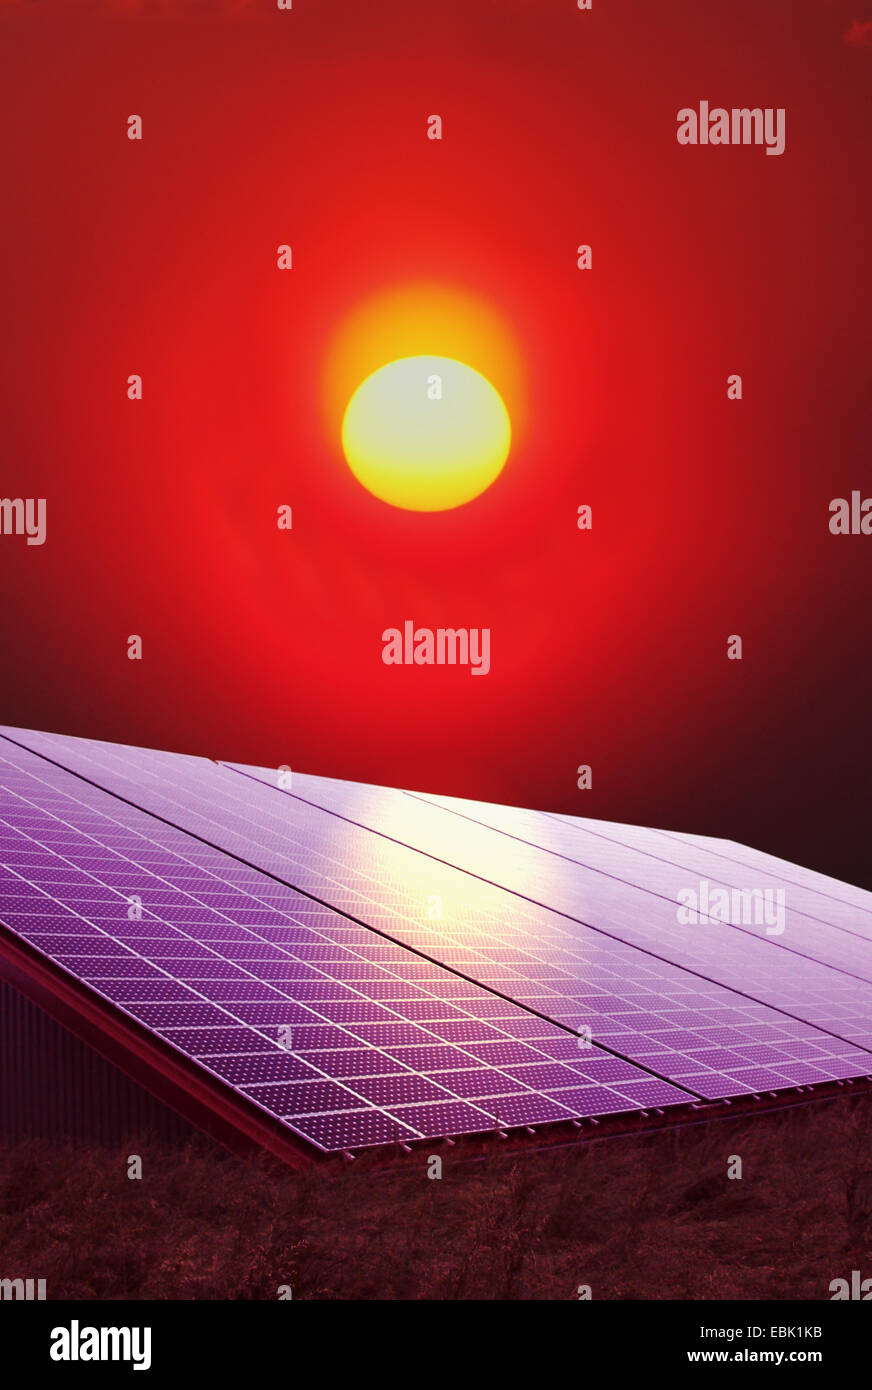 solar panel and sun, Germany - Stock Image